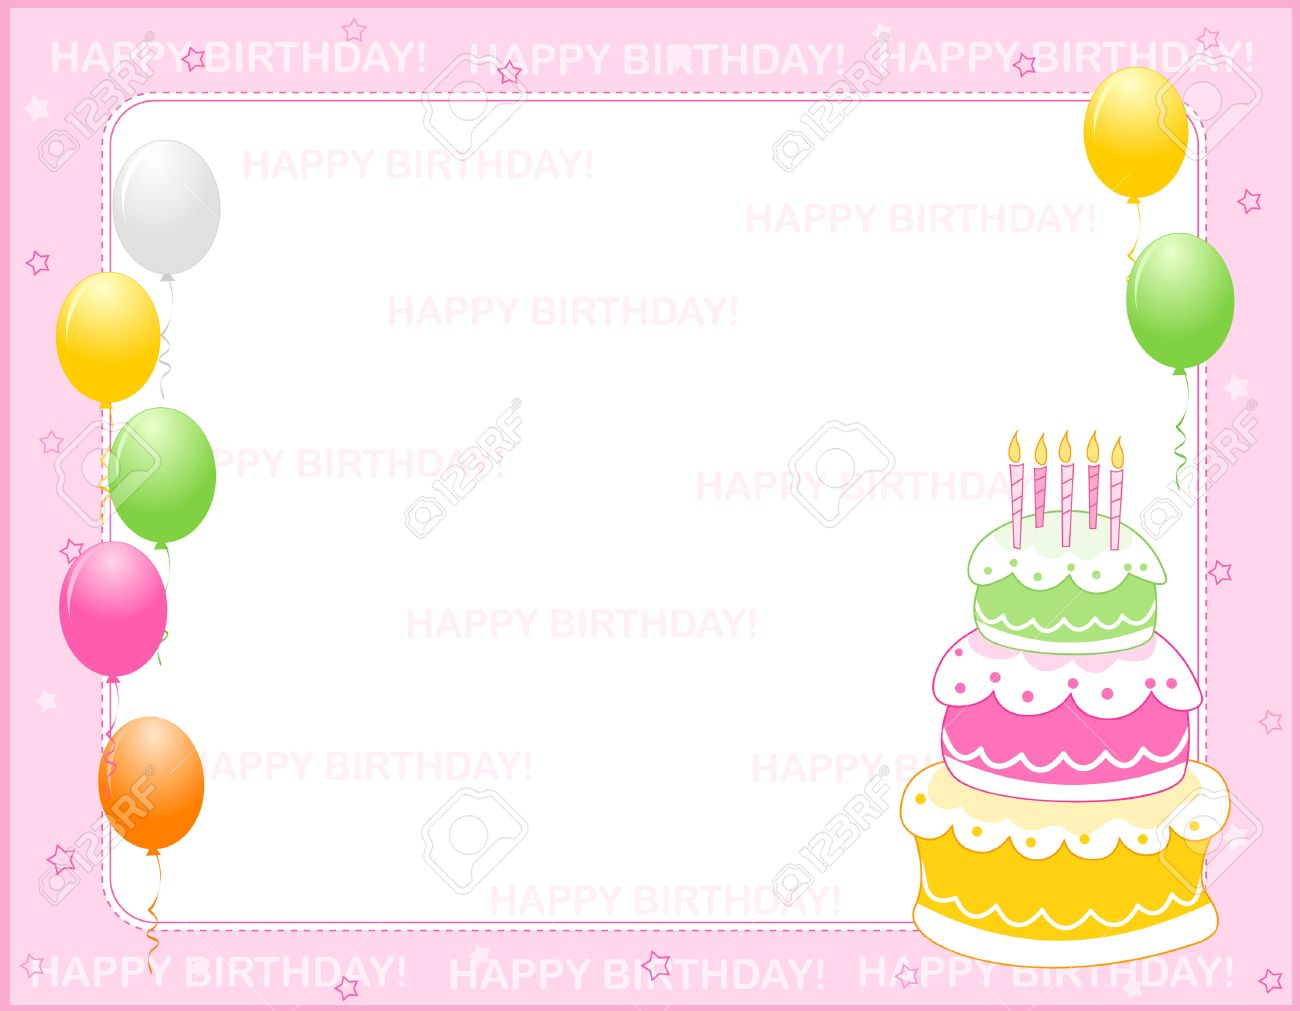 Colorful Girly Birthday Card Invitation Background With Happy Text And Balloons A Birth